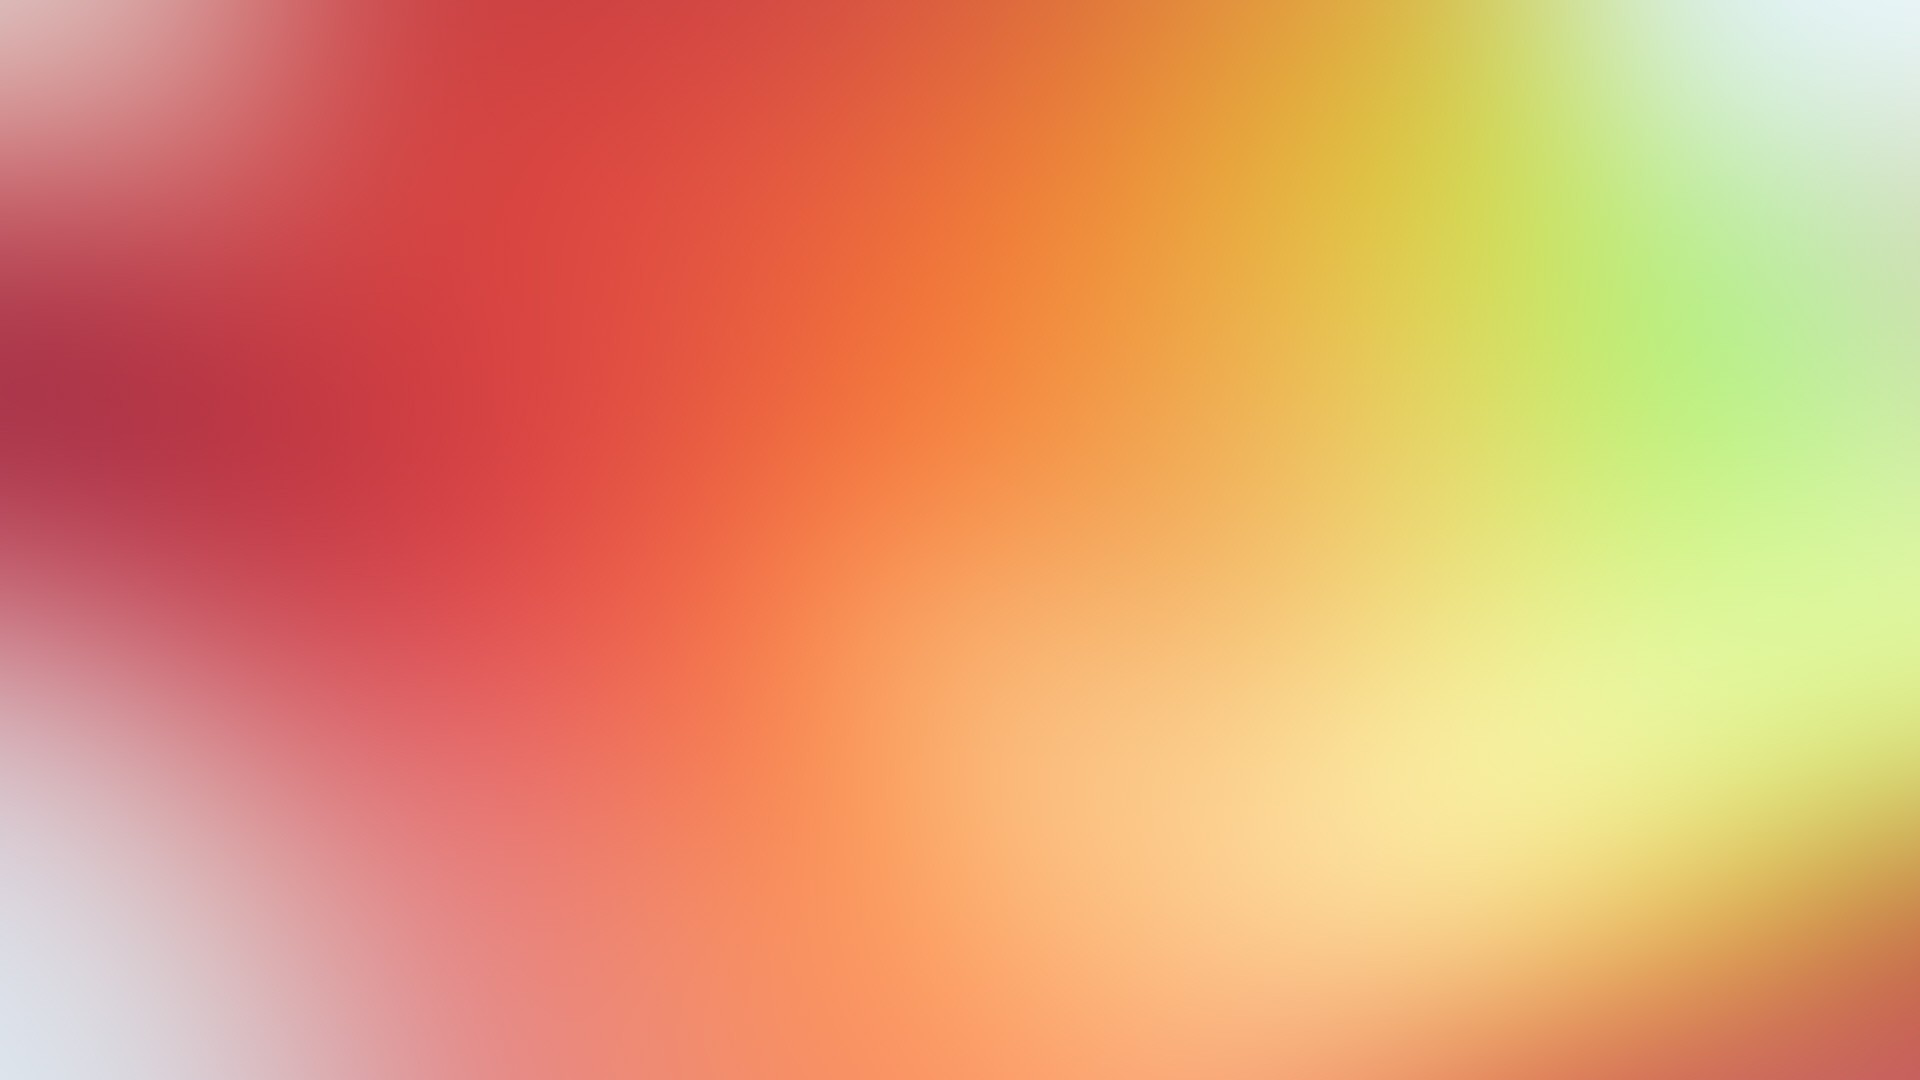 Wallpaper yellow, red, spots, background, abstract